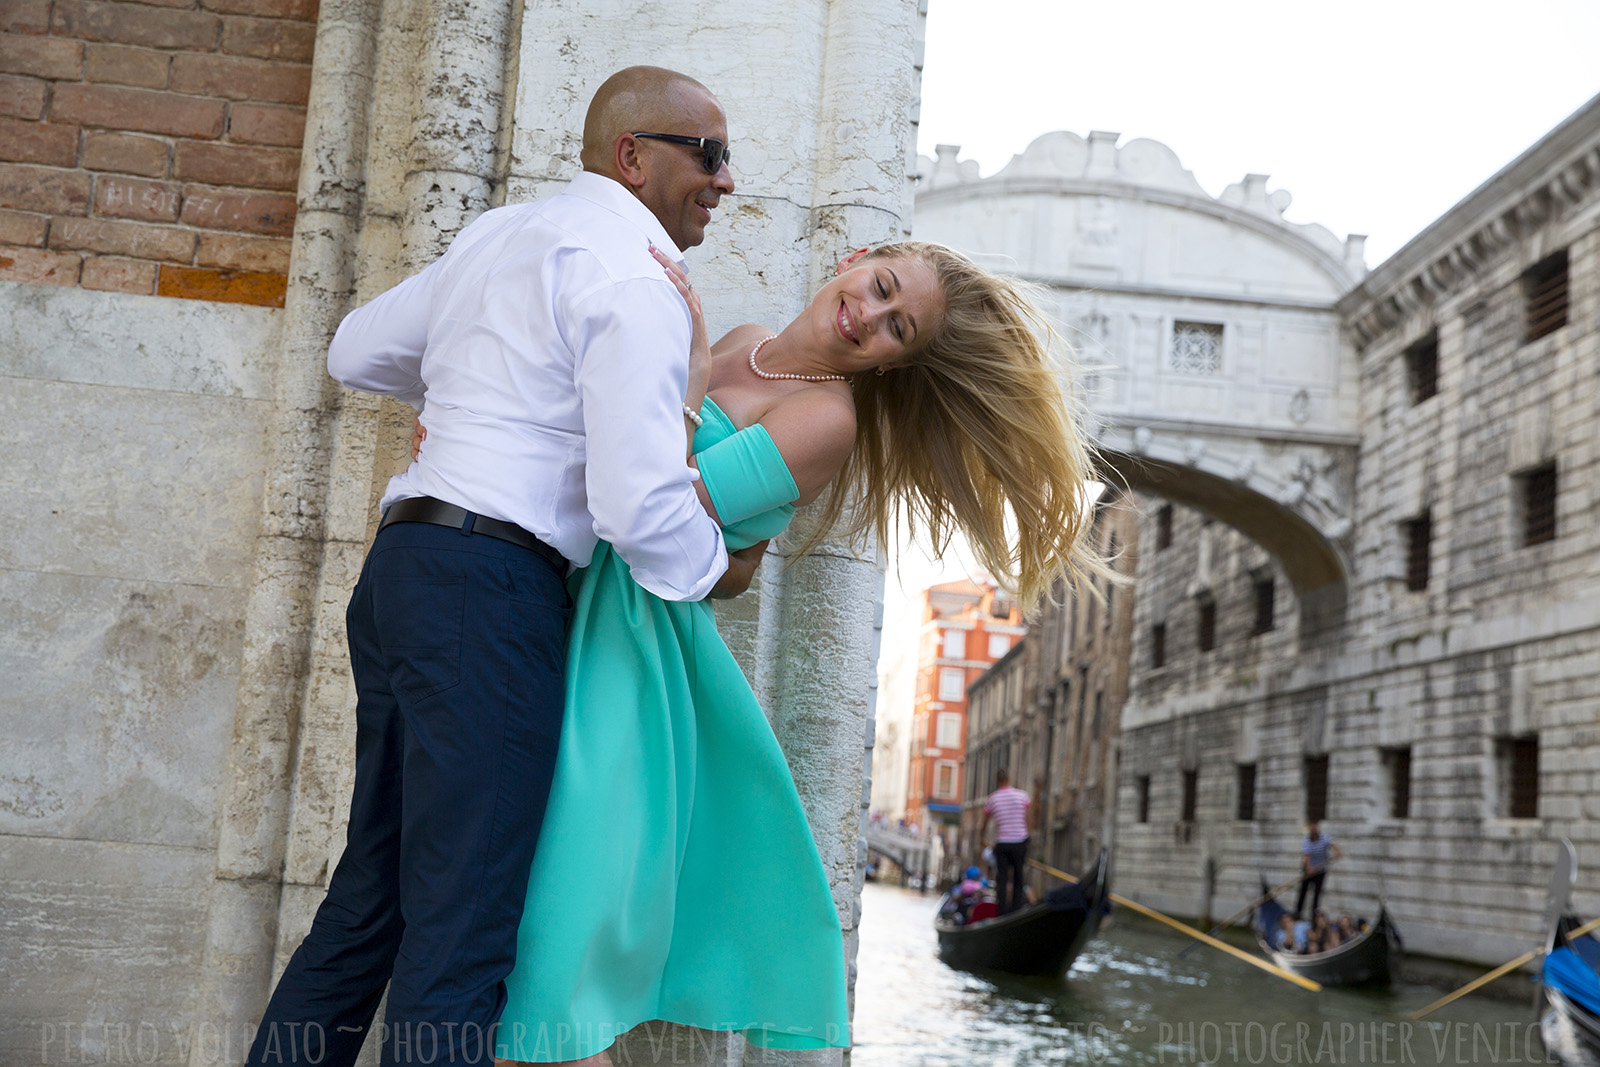 Photographer in Venice for vacation photo shoot